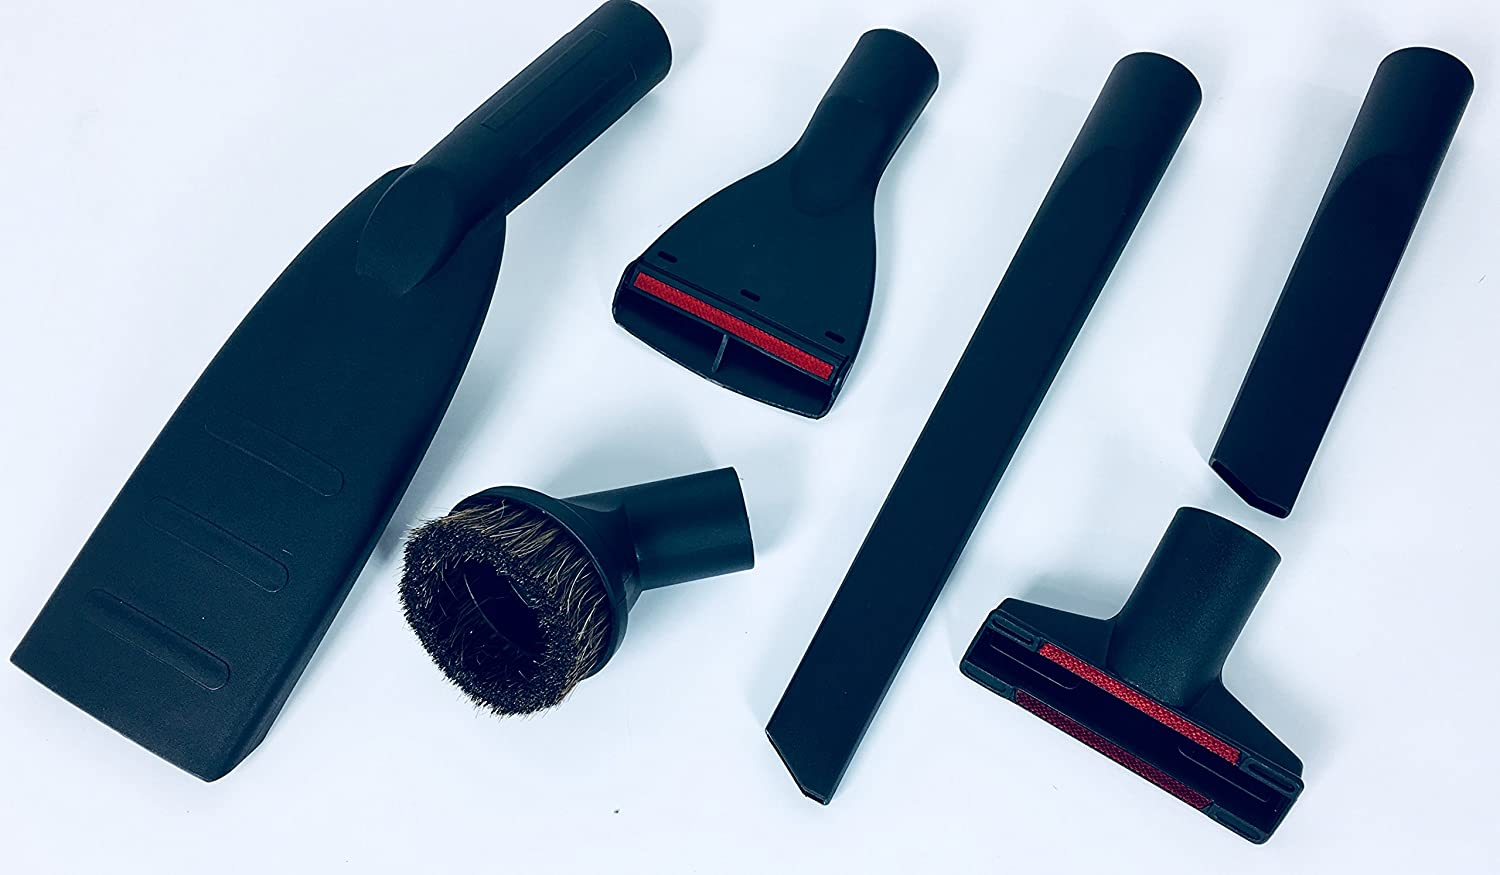 6 Piece Set of Professional Car Vacuum Cleaner Nozzles and Brushes, Crevice Tool, 35 mm, Upholstery Tool, Short Brush Set, XXL, Rug Nozzle, Dusting Brush, Suitable for Kärcher Wet and Dry Vacuum Cleaners, See Model List detailmate